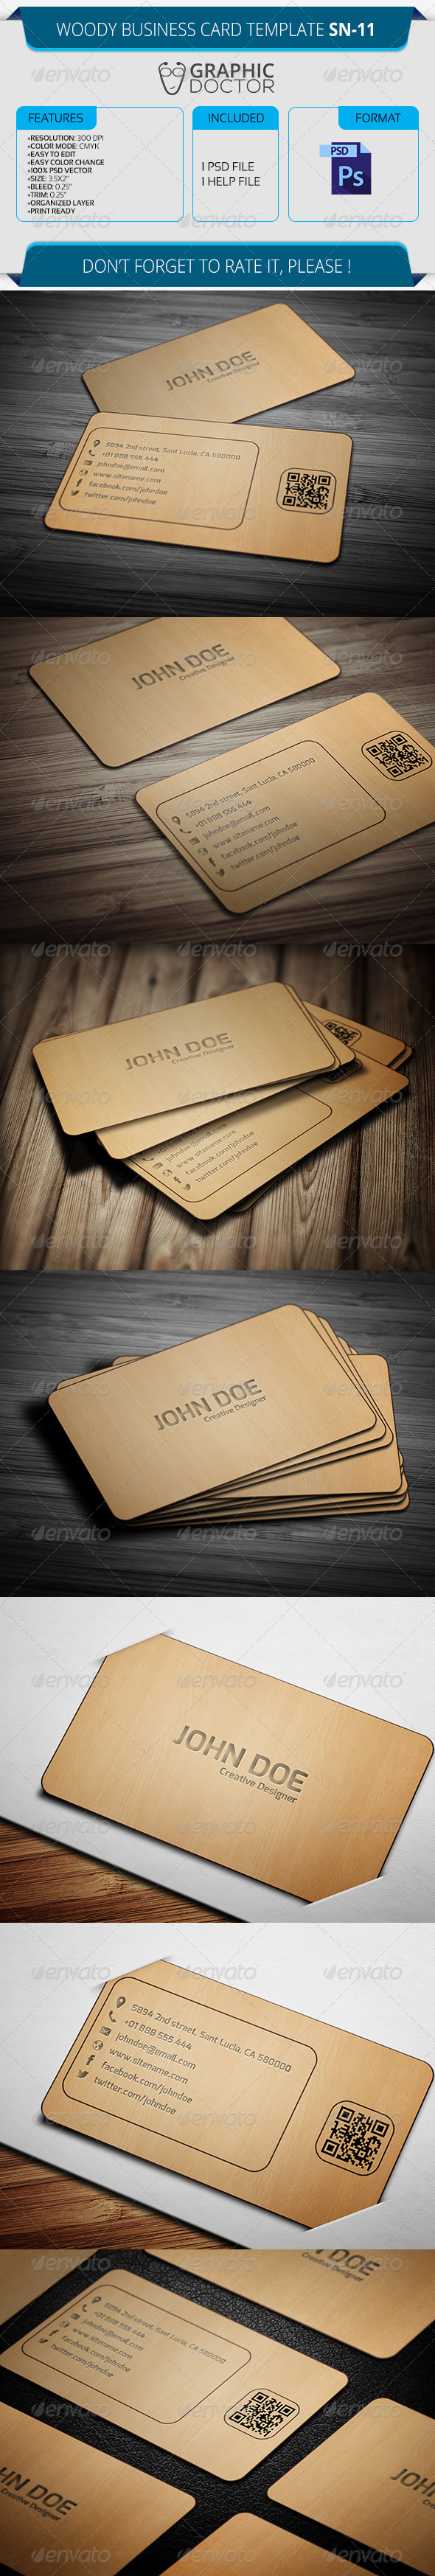 Woody Business Card Template SN-11 - Real Objects Business Cards